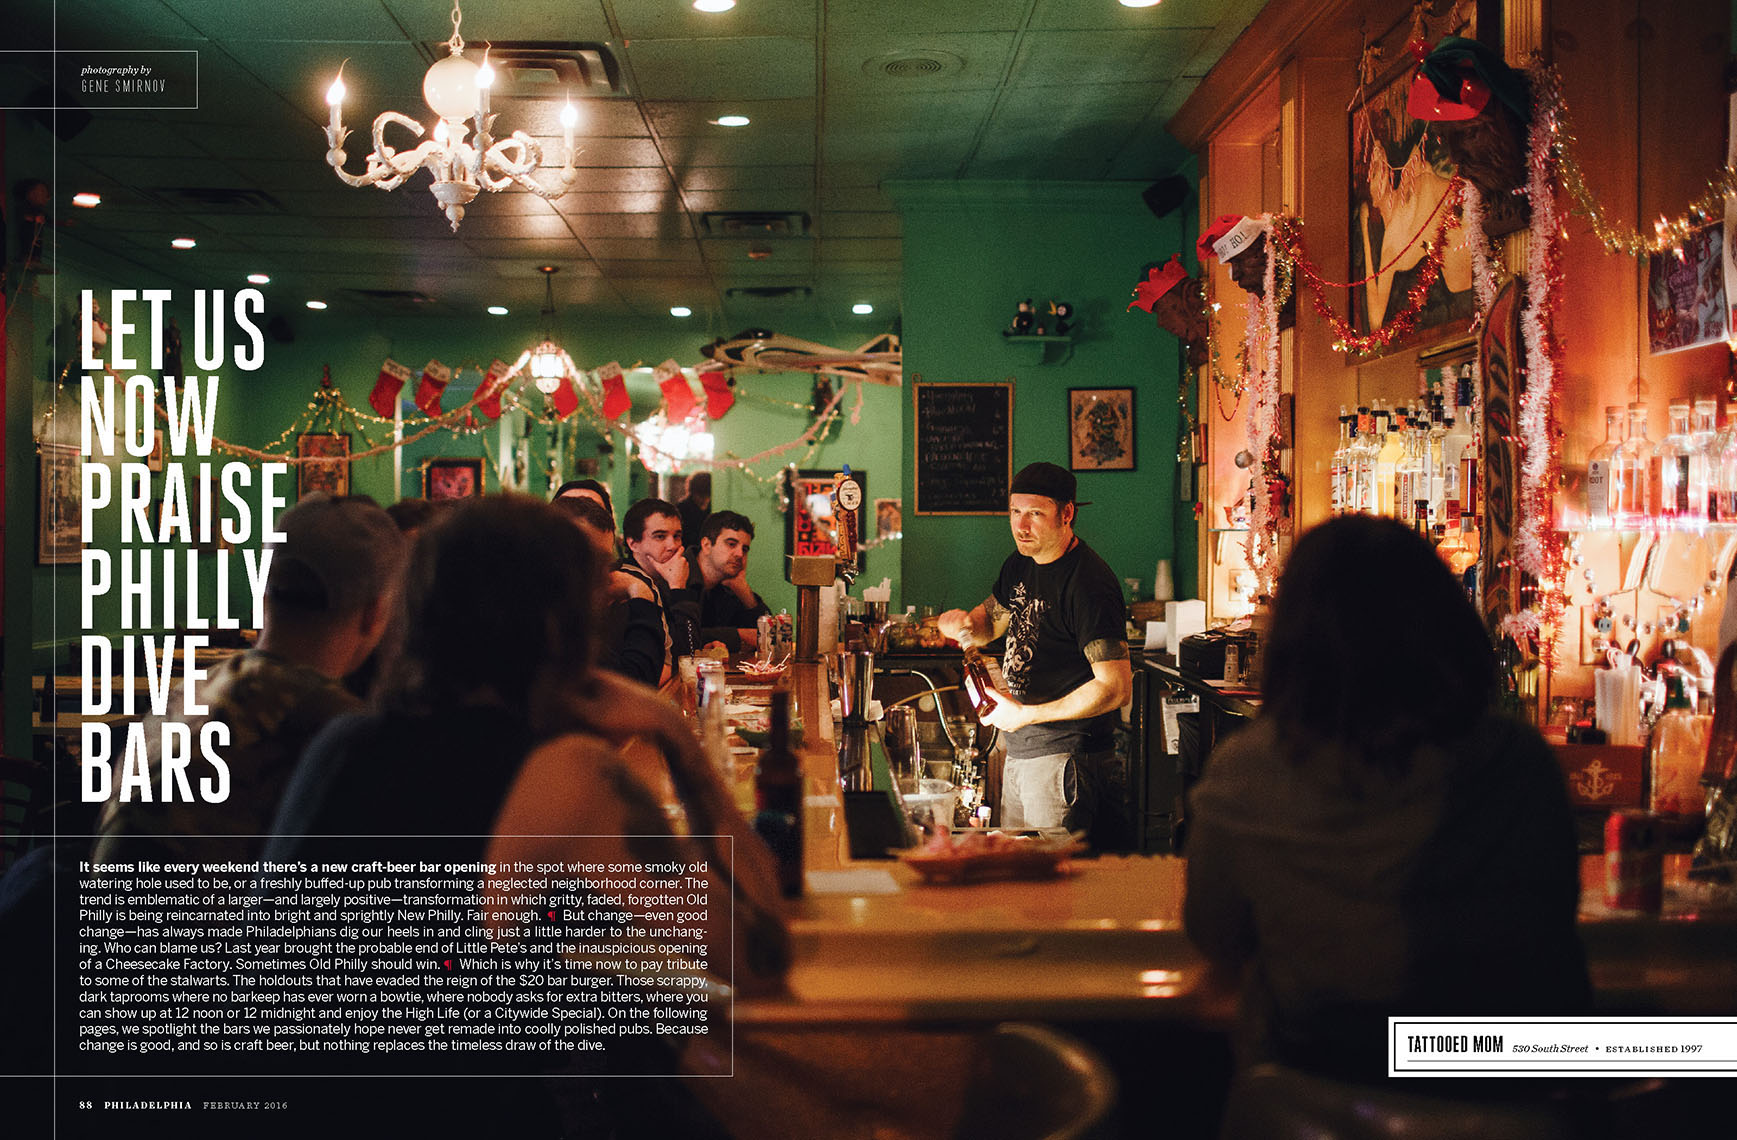 Dive bars of Philadelphia feature for Philadelphia Magazine